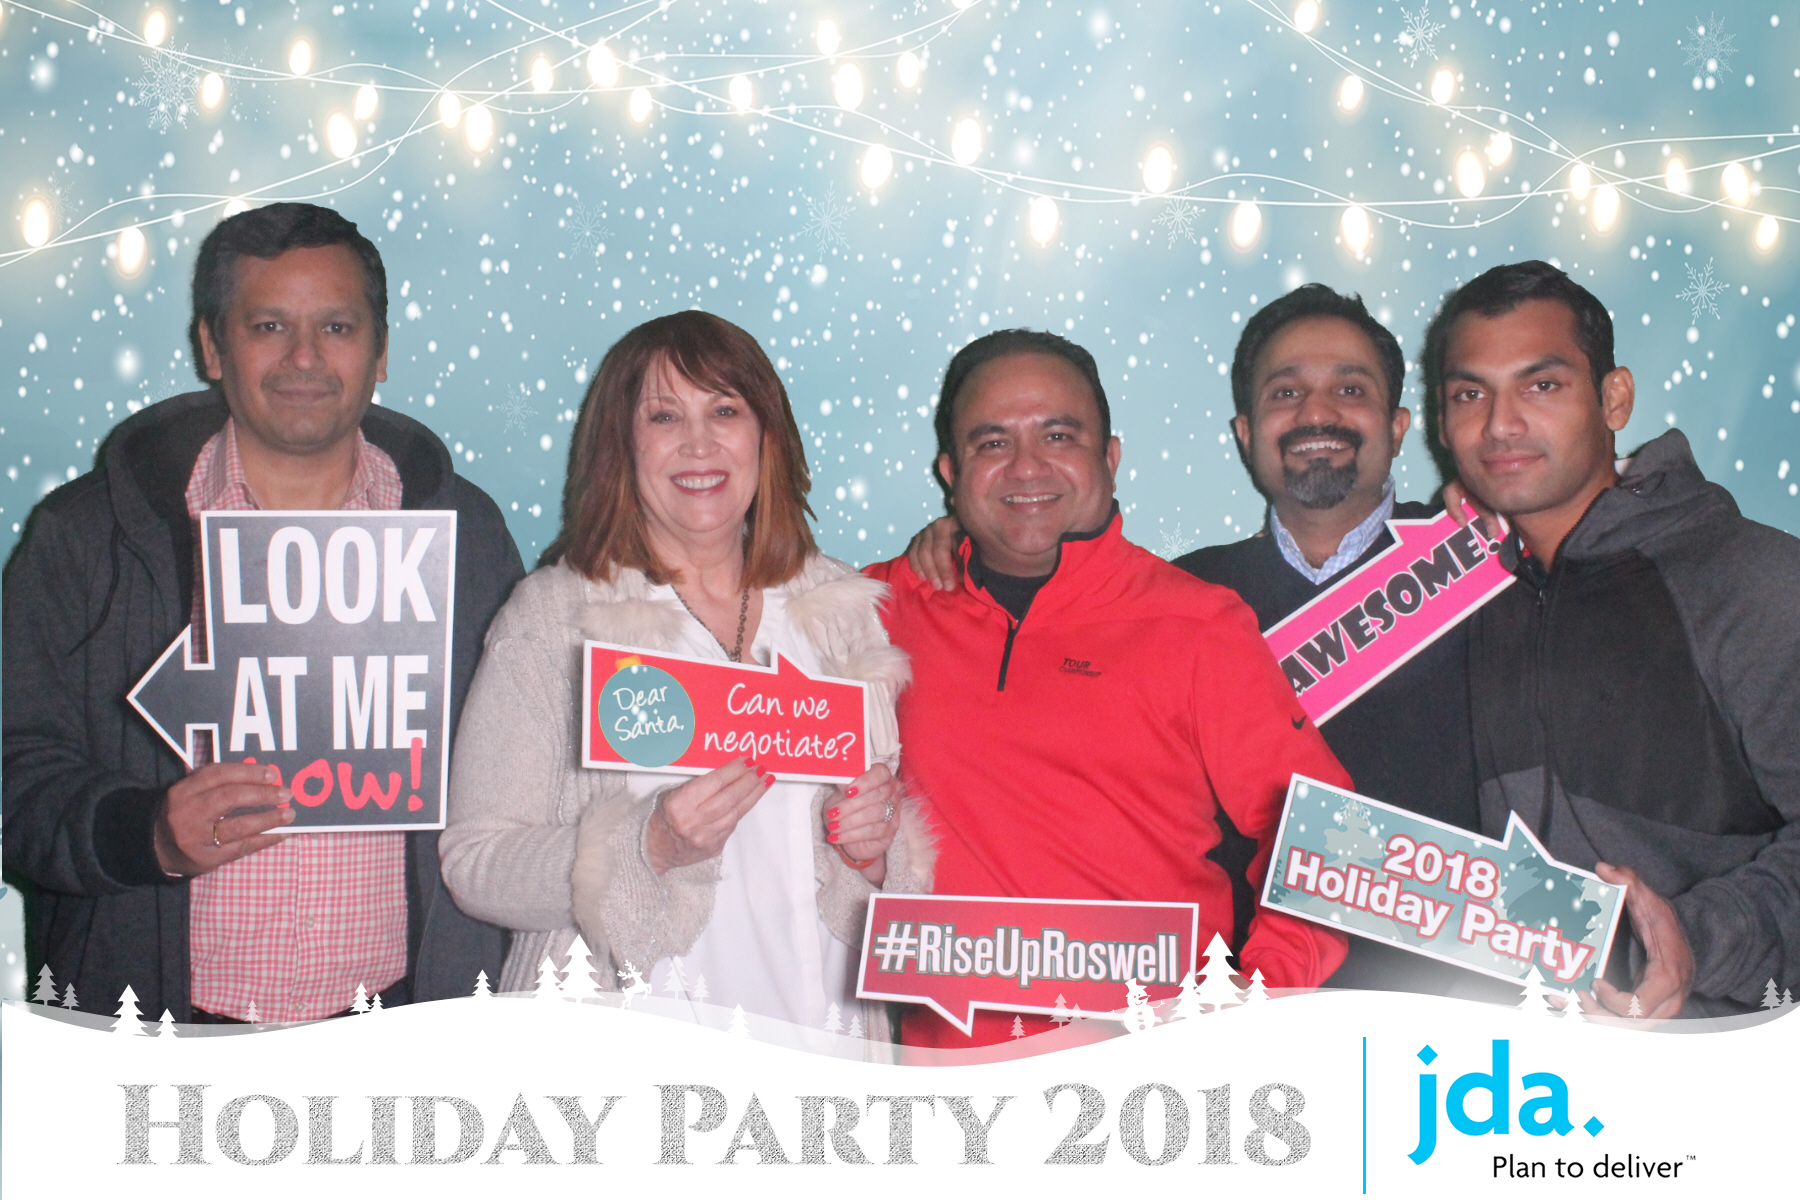 JDA Holiday Party